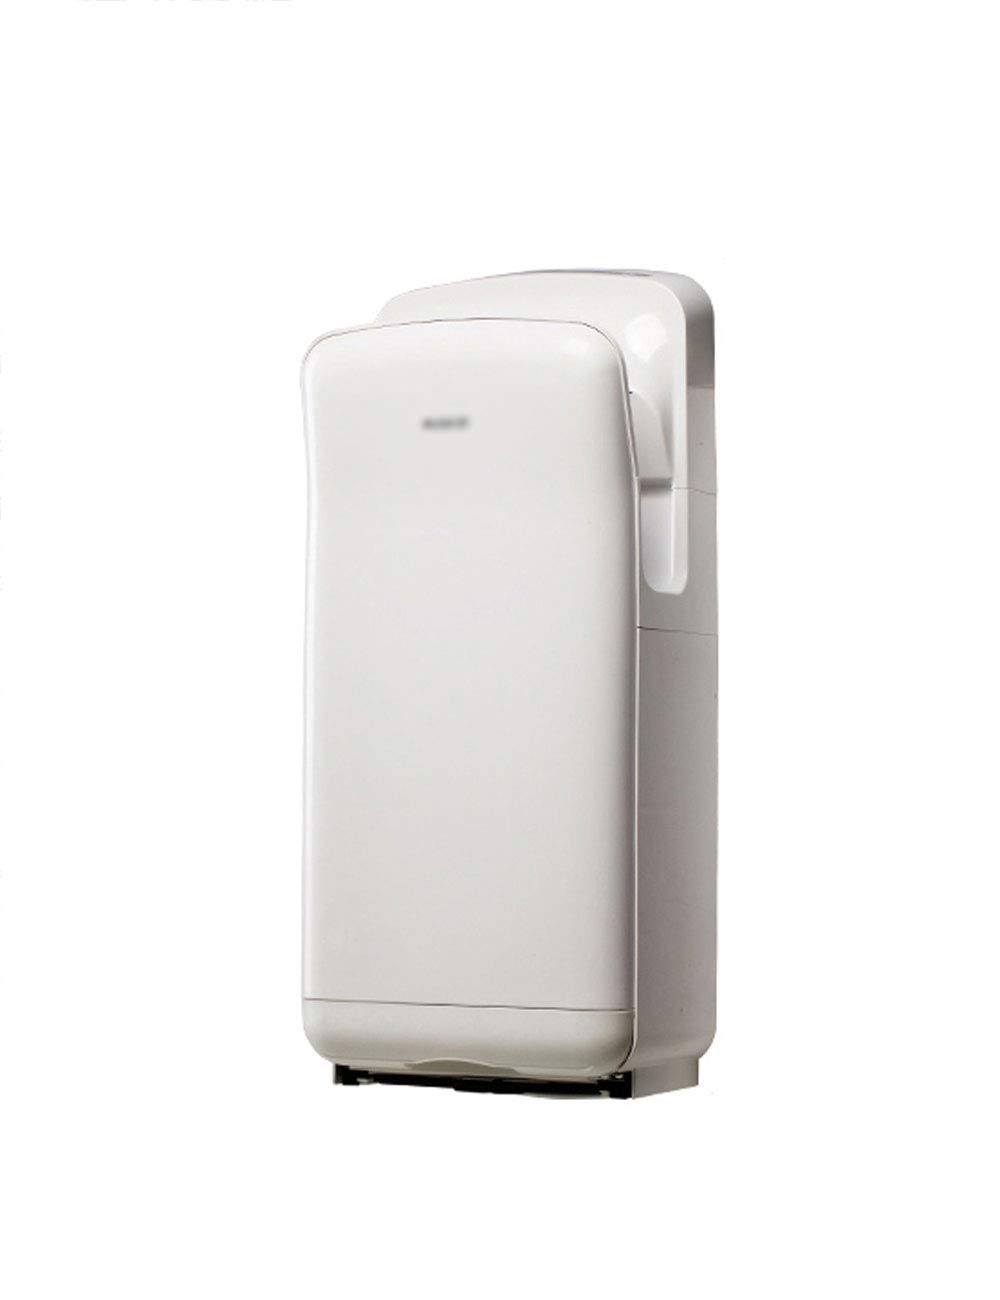 51RZNK%2BvWxL - Double-sided Jet Smart Hand Dryer, Wall-mounted High Speed, No Noise, High Power, Commercial, Household, with UV…